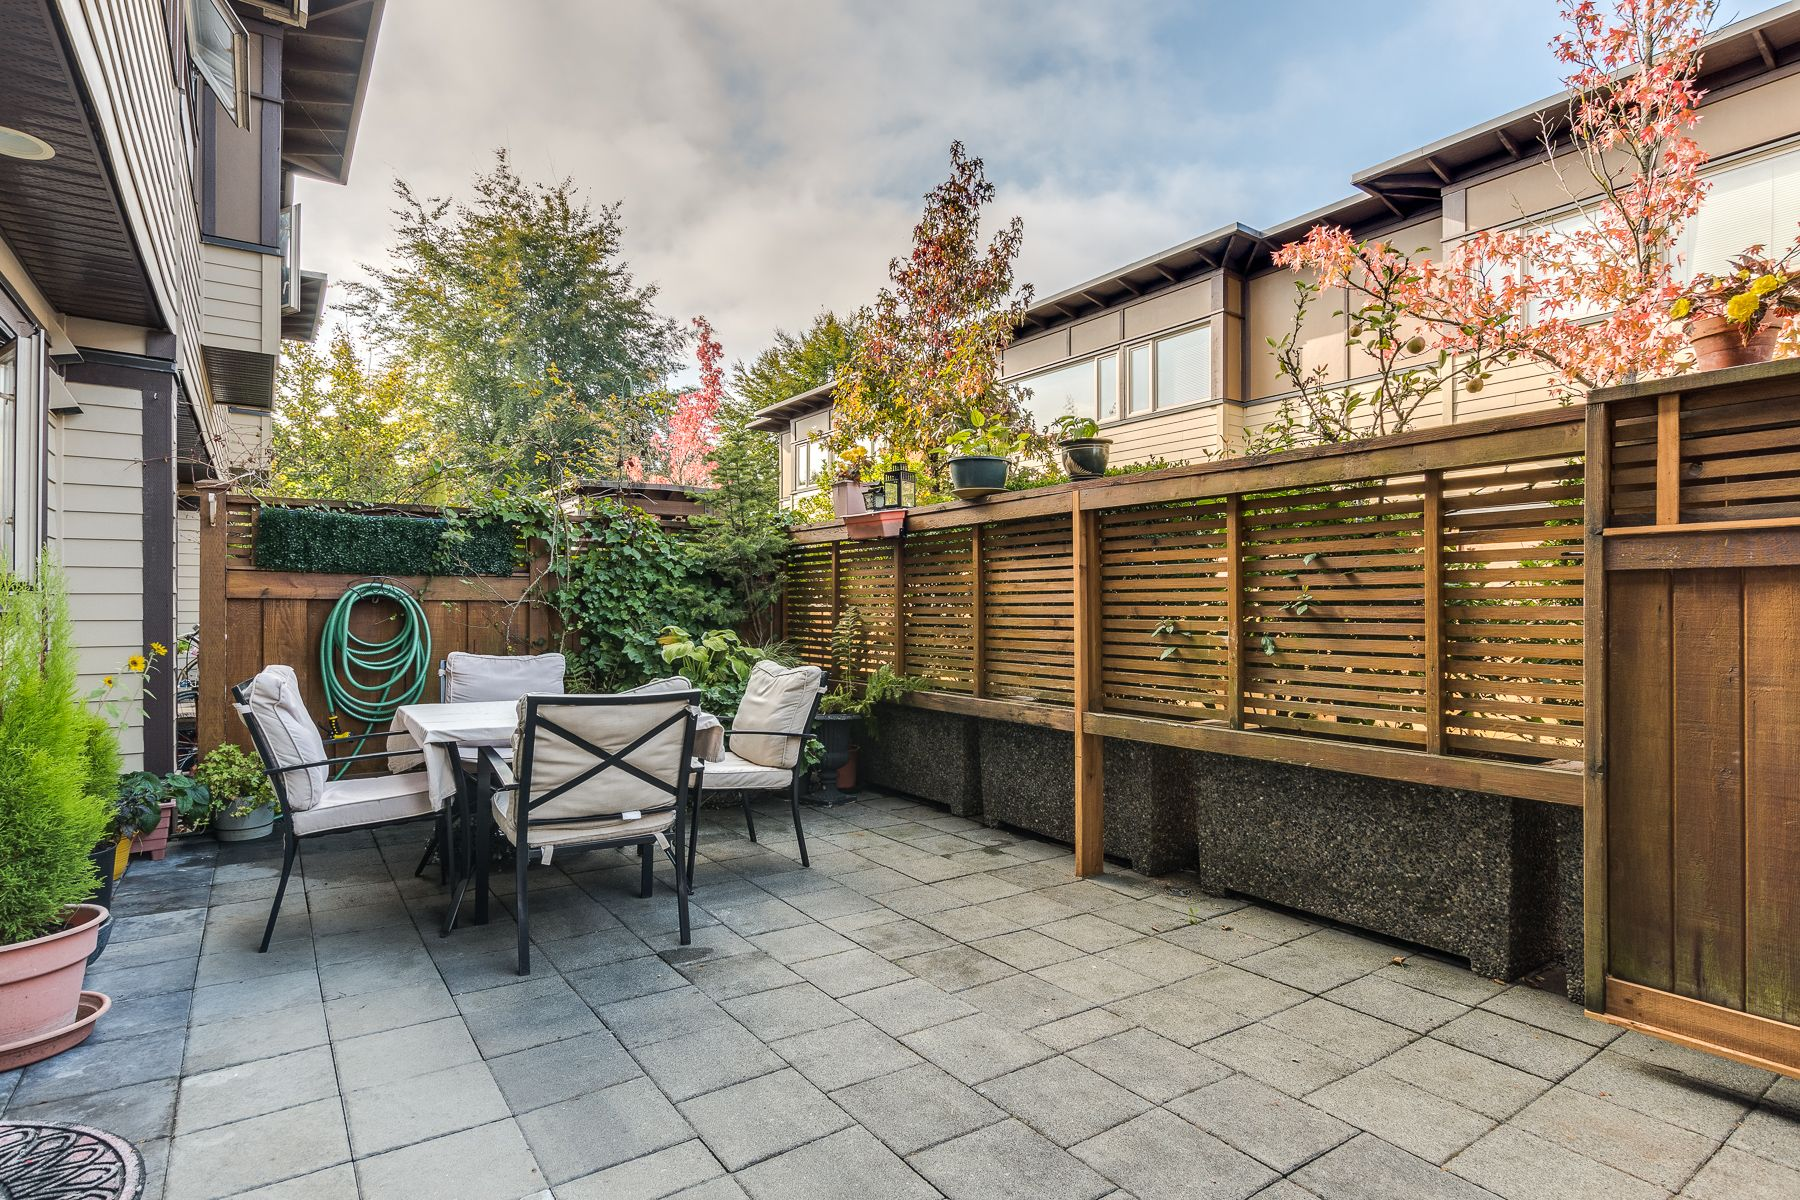 Photo 5: Photos: 7-2389 Charles St in Vancouver: Grandview Woodland Townhouse for sale (Vancouver East)